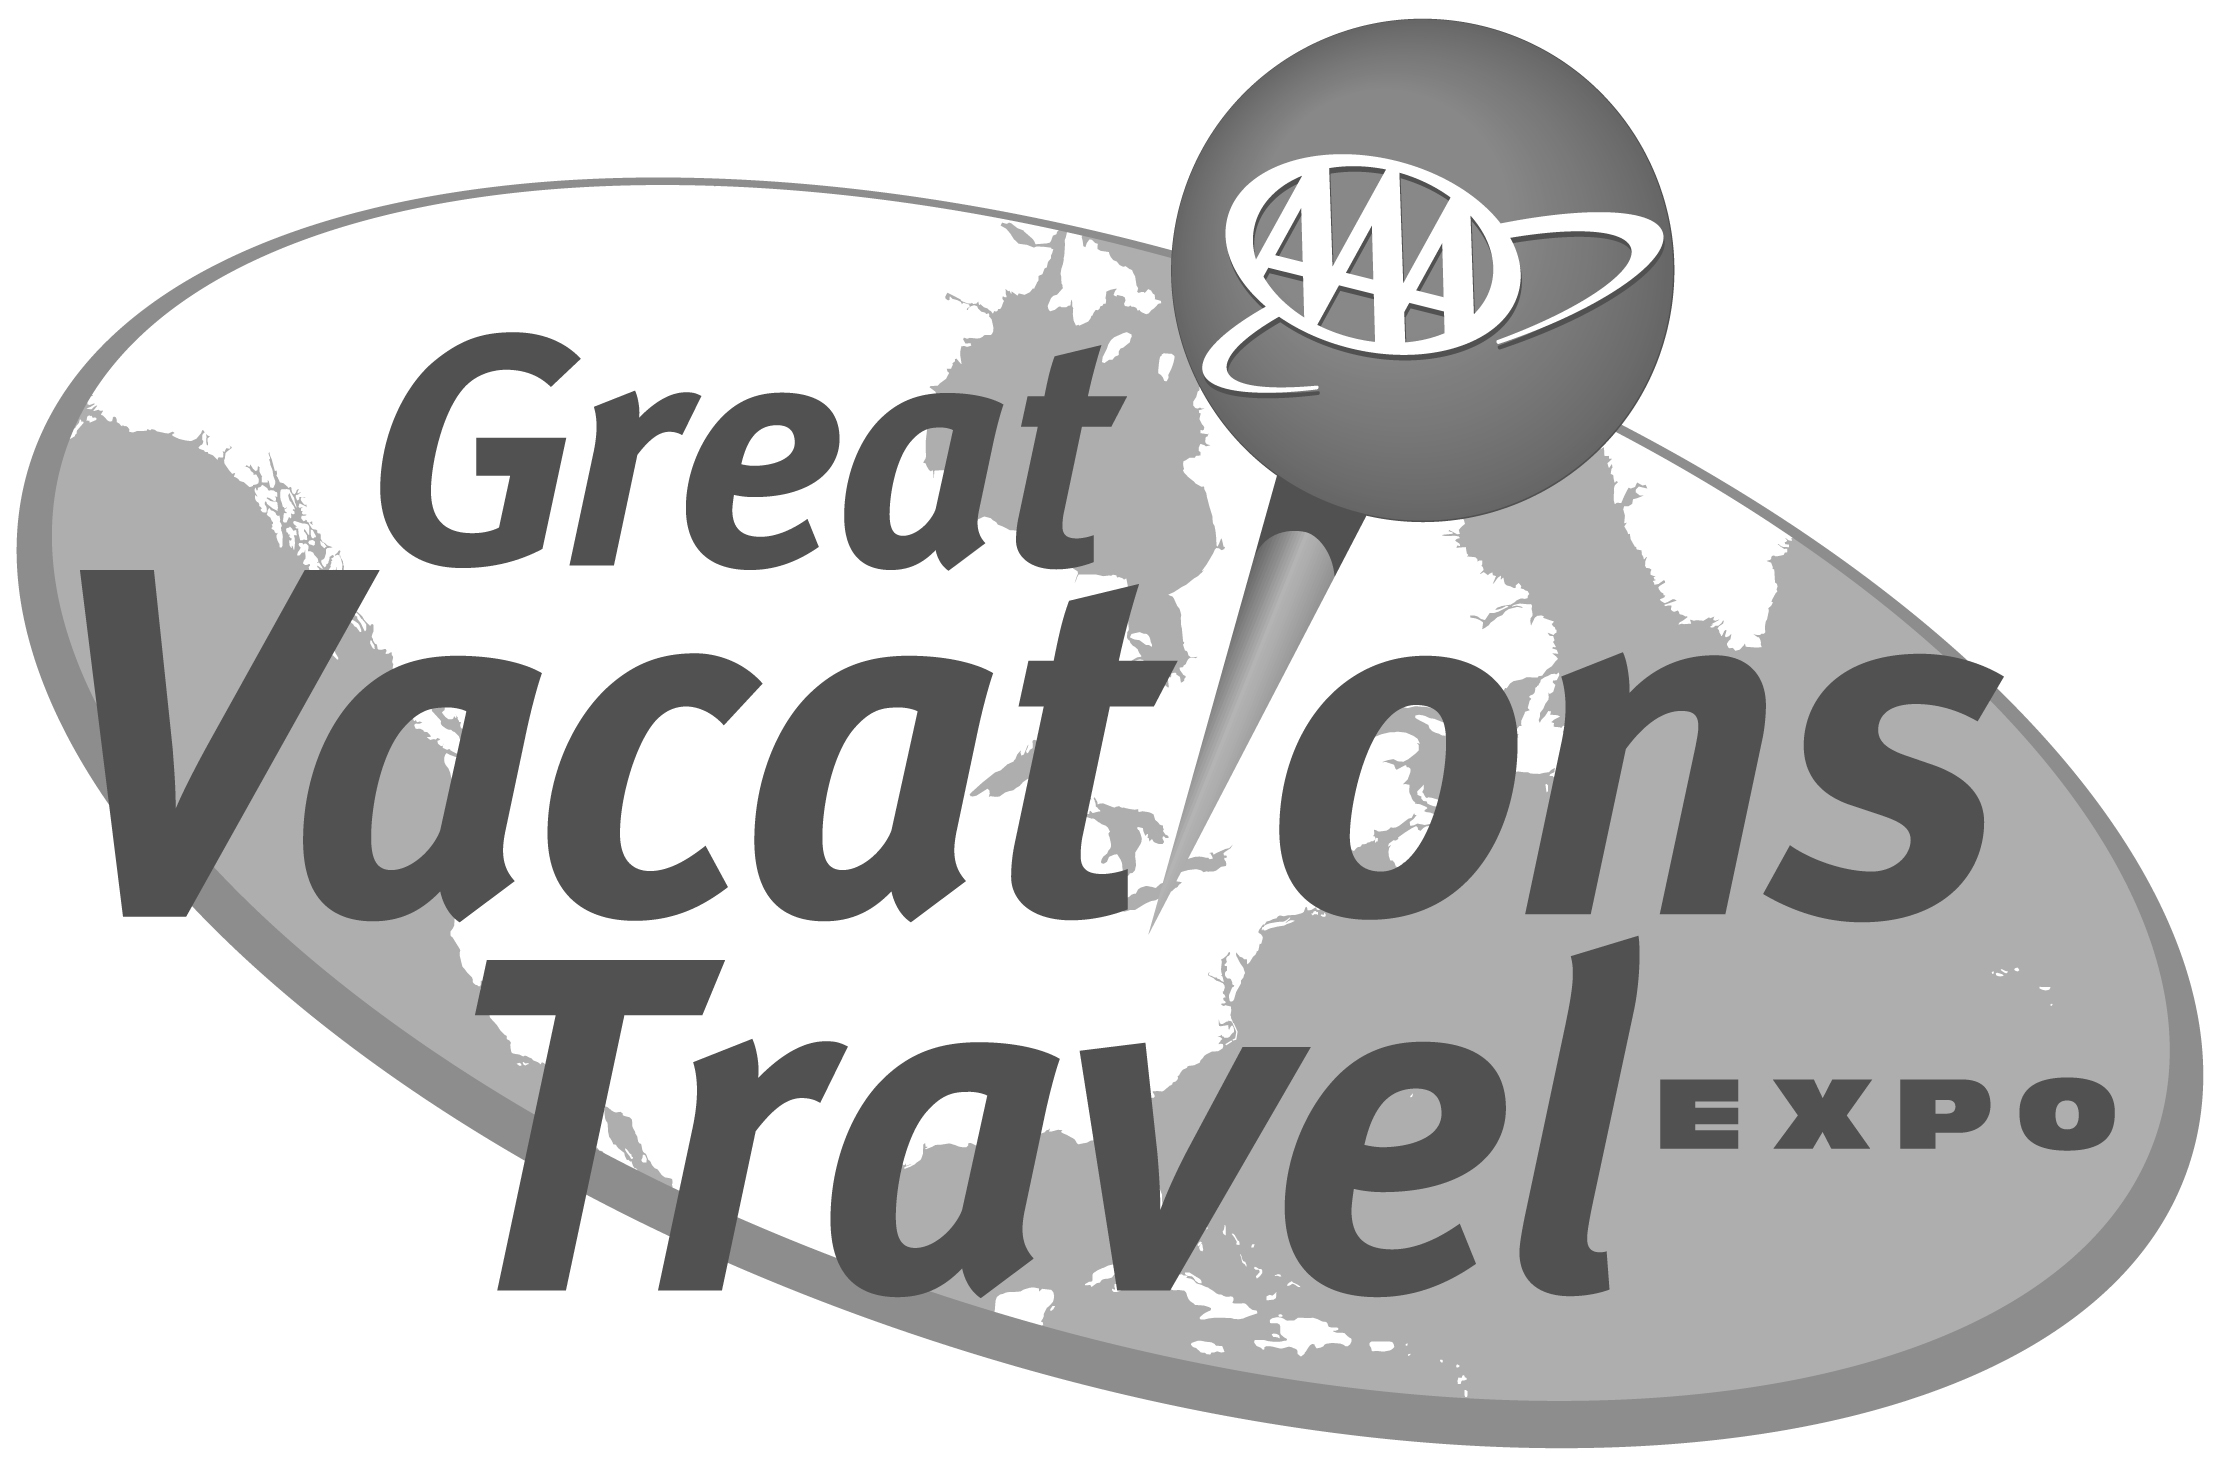 Aaa Great Vacations Travel Expo Logos - Aaa Travel, Transparent background PNG HD thumbnail